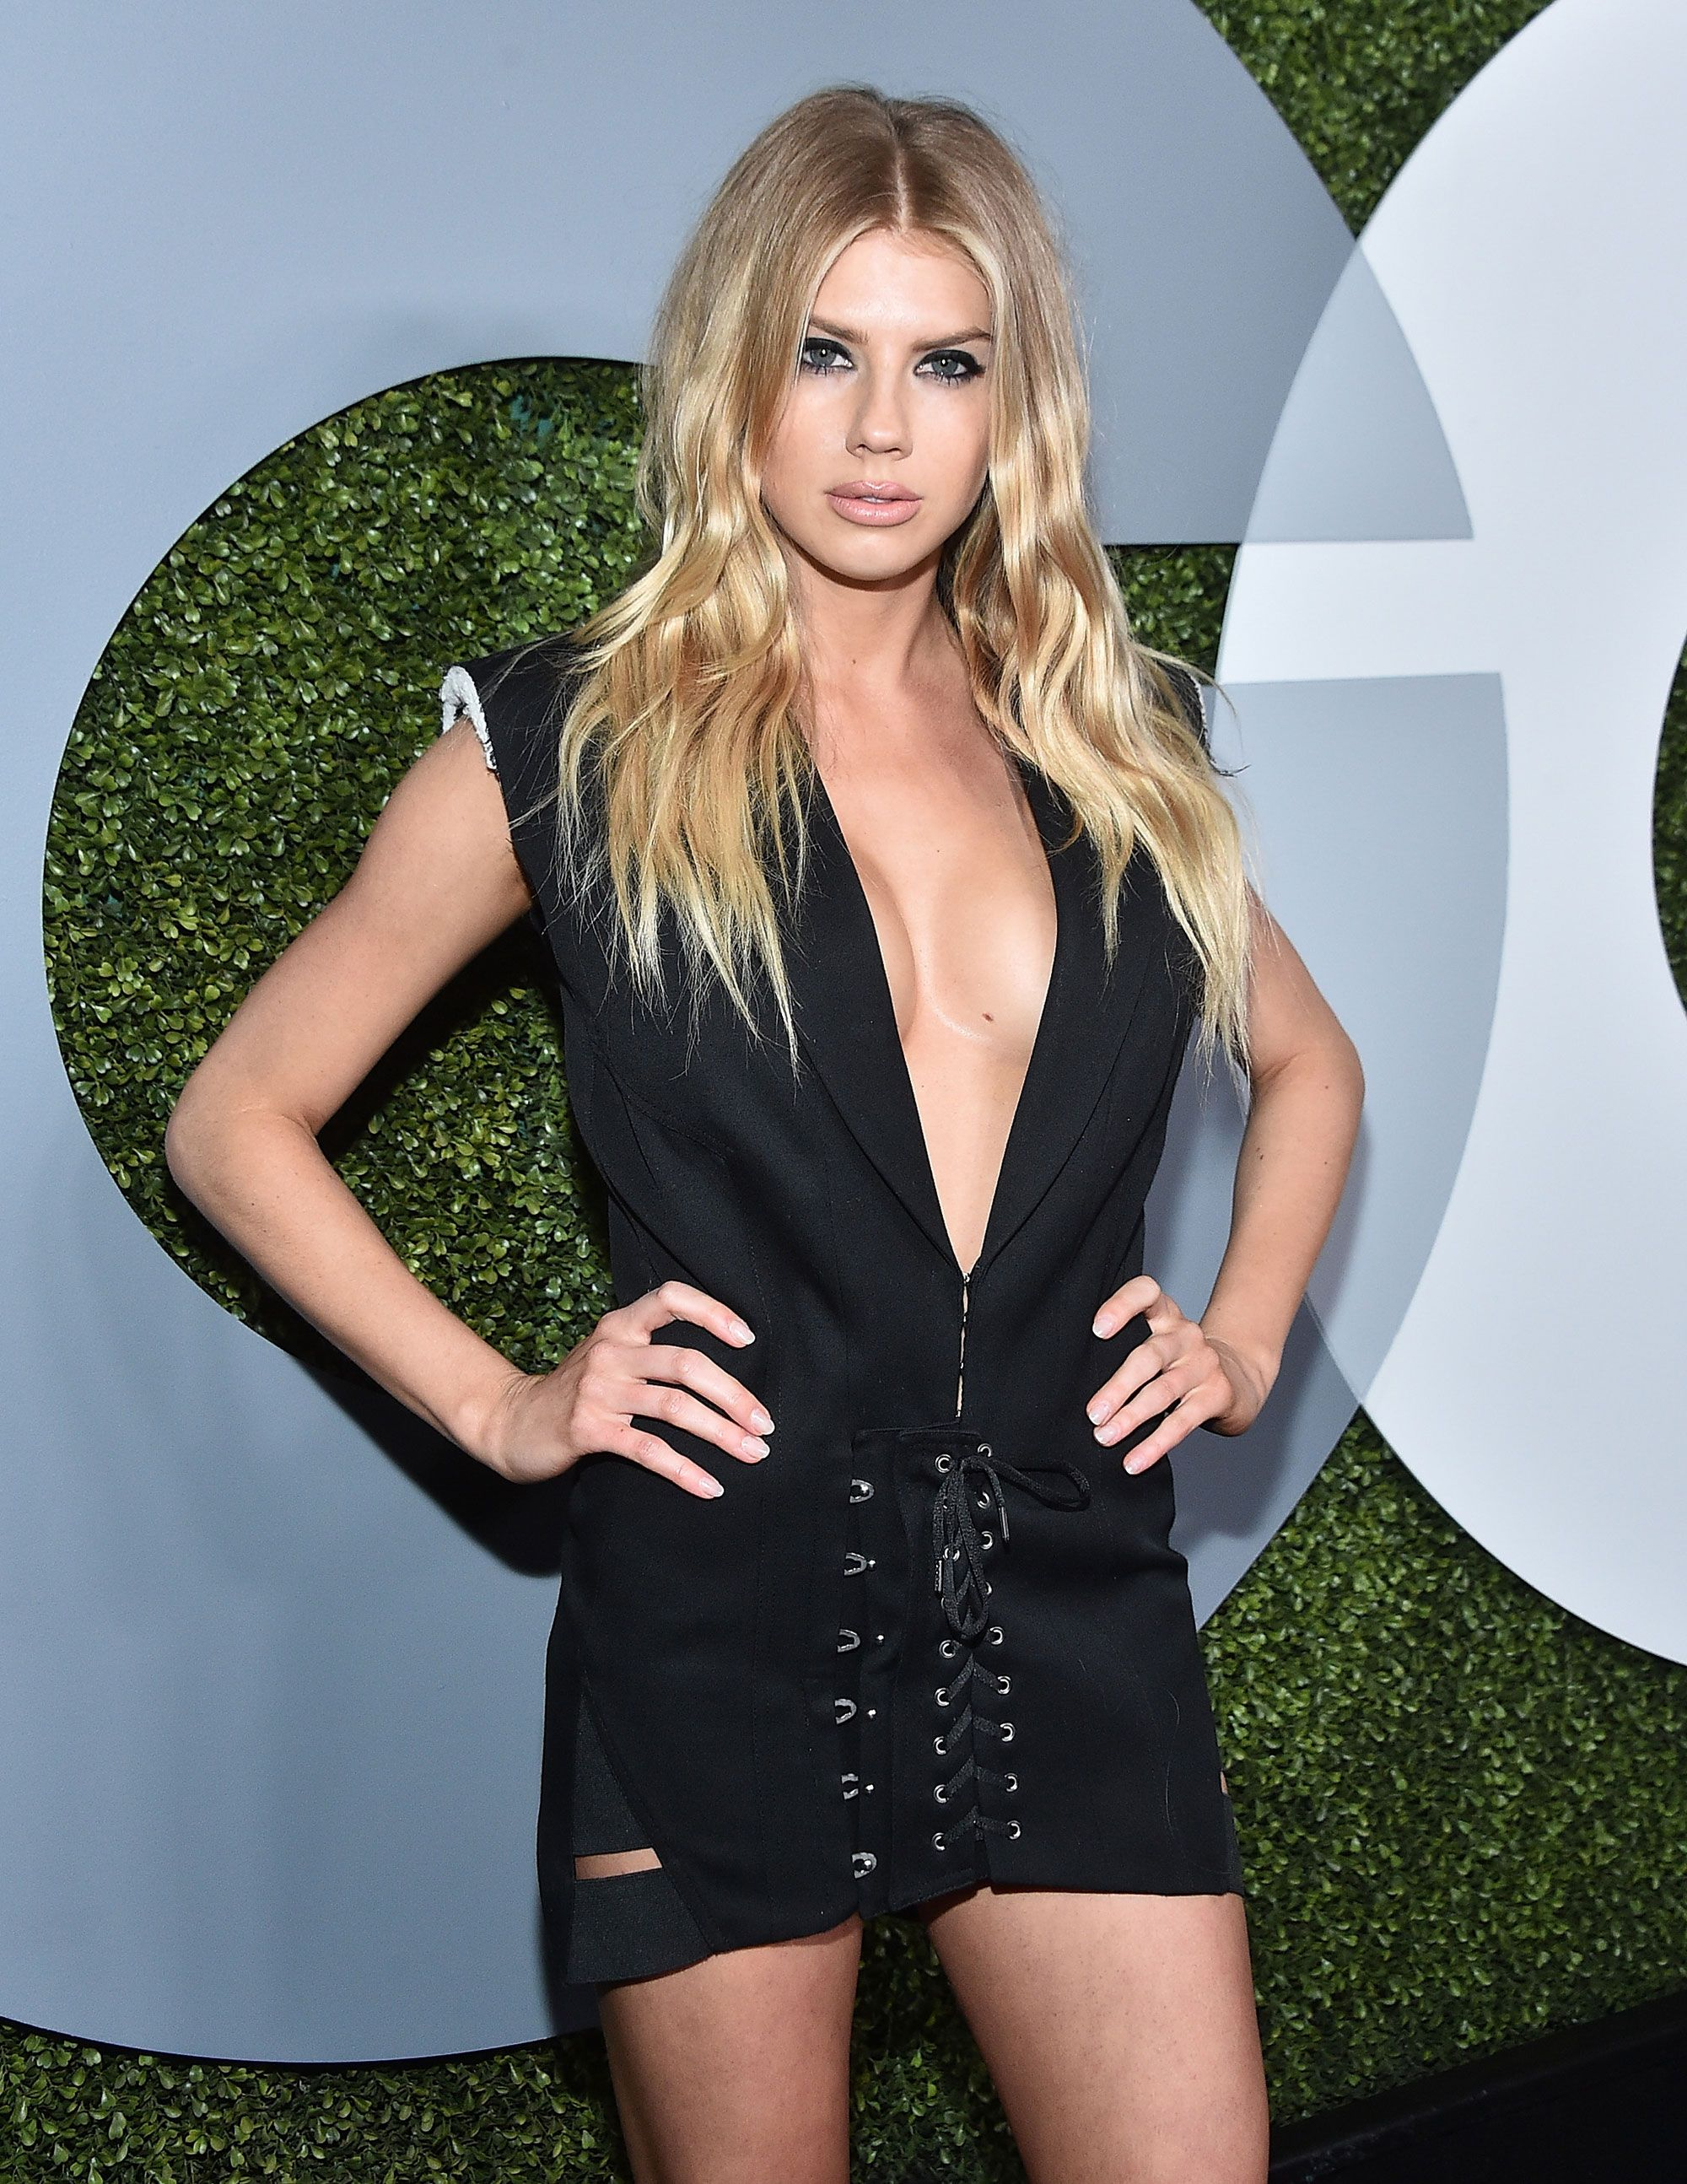 Charlotte McKinney Deep Revealing Dress - Charlotte McKinney Deep Revealing Dress